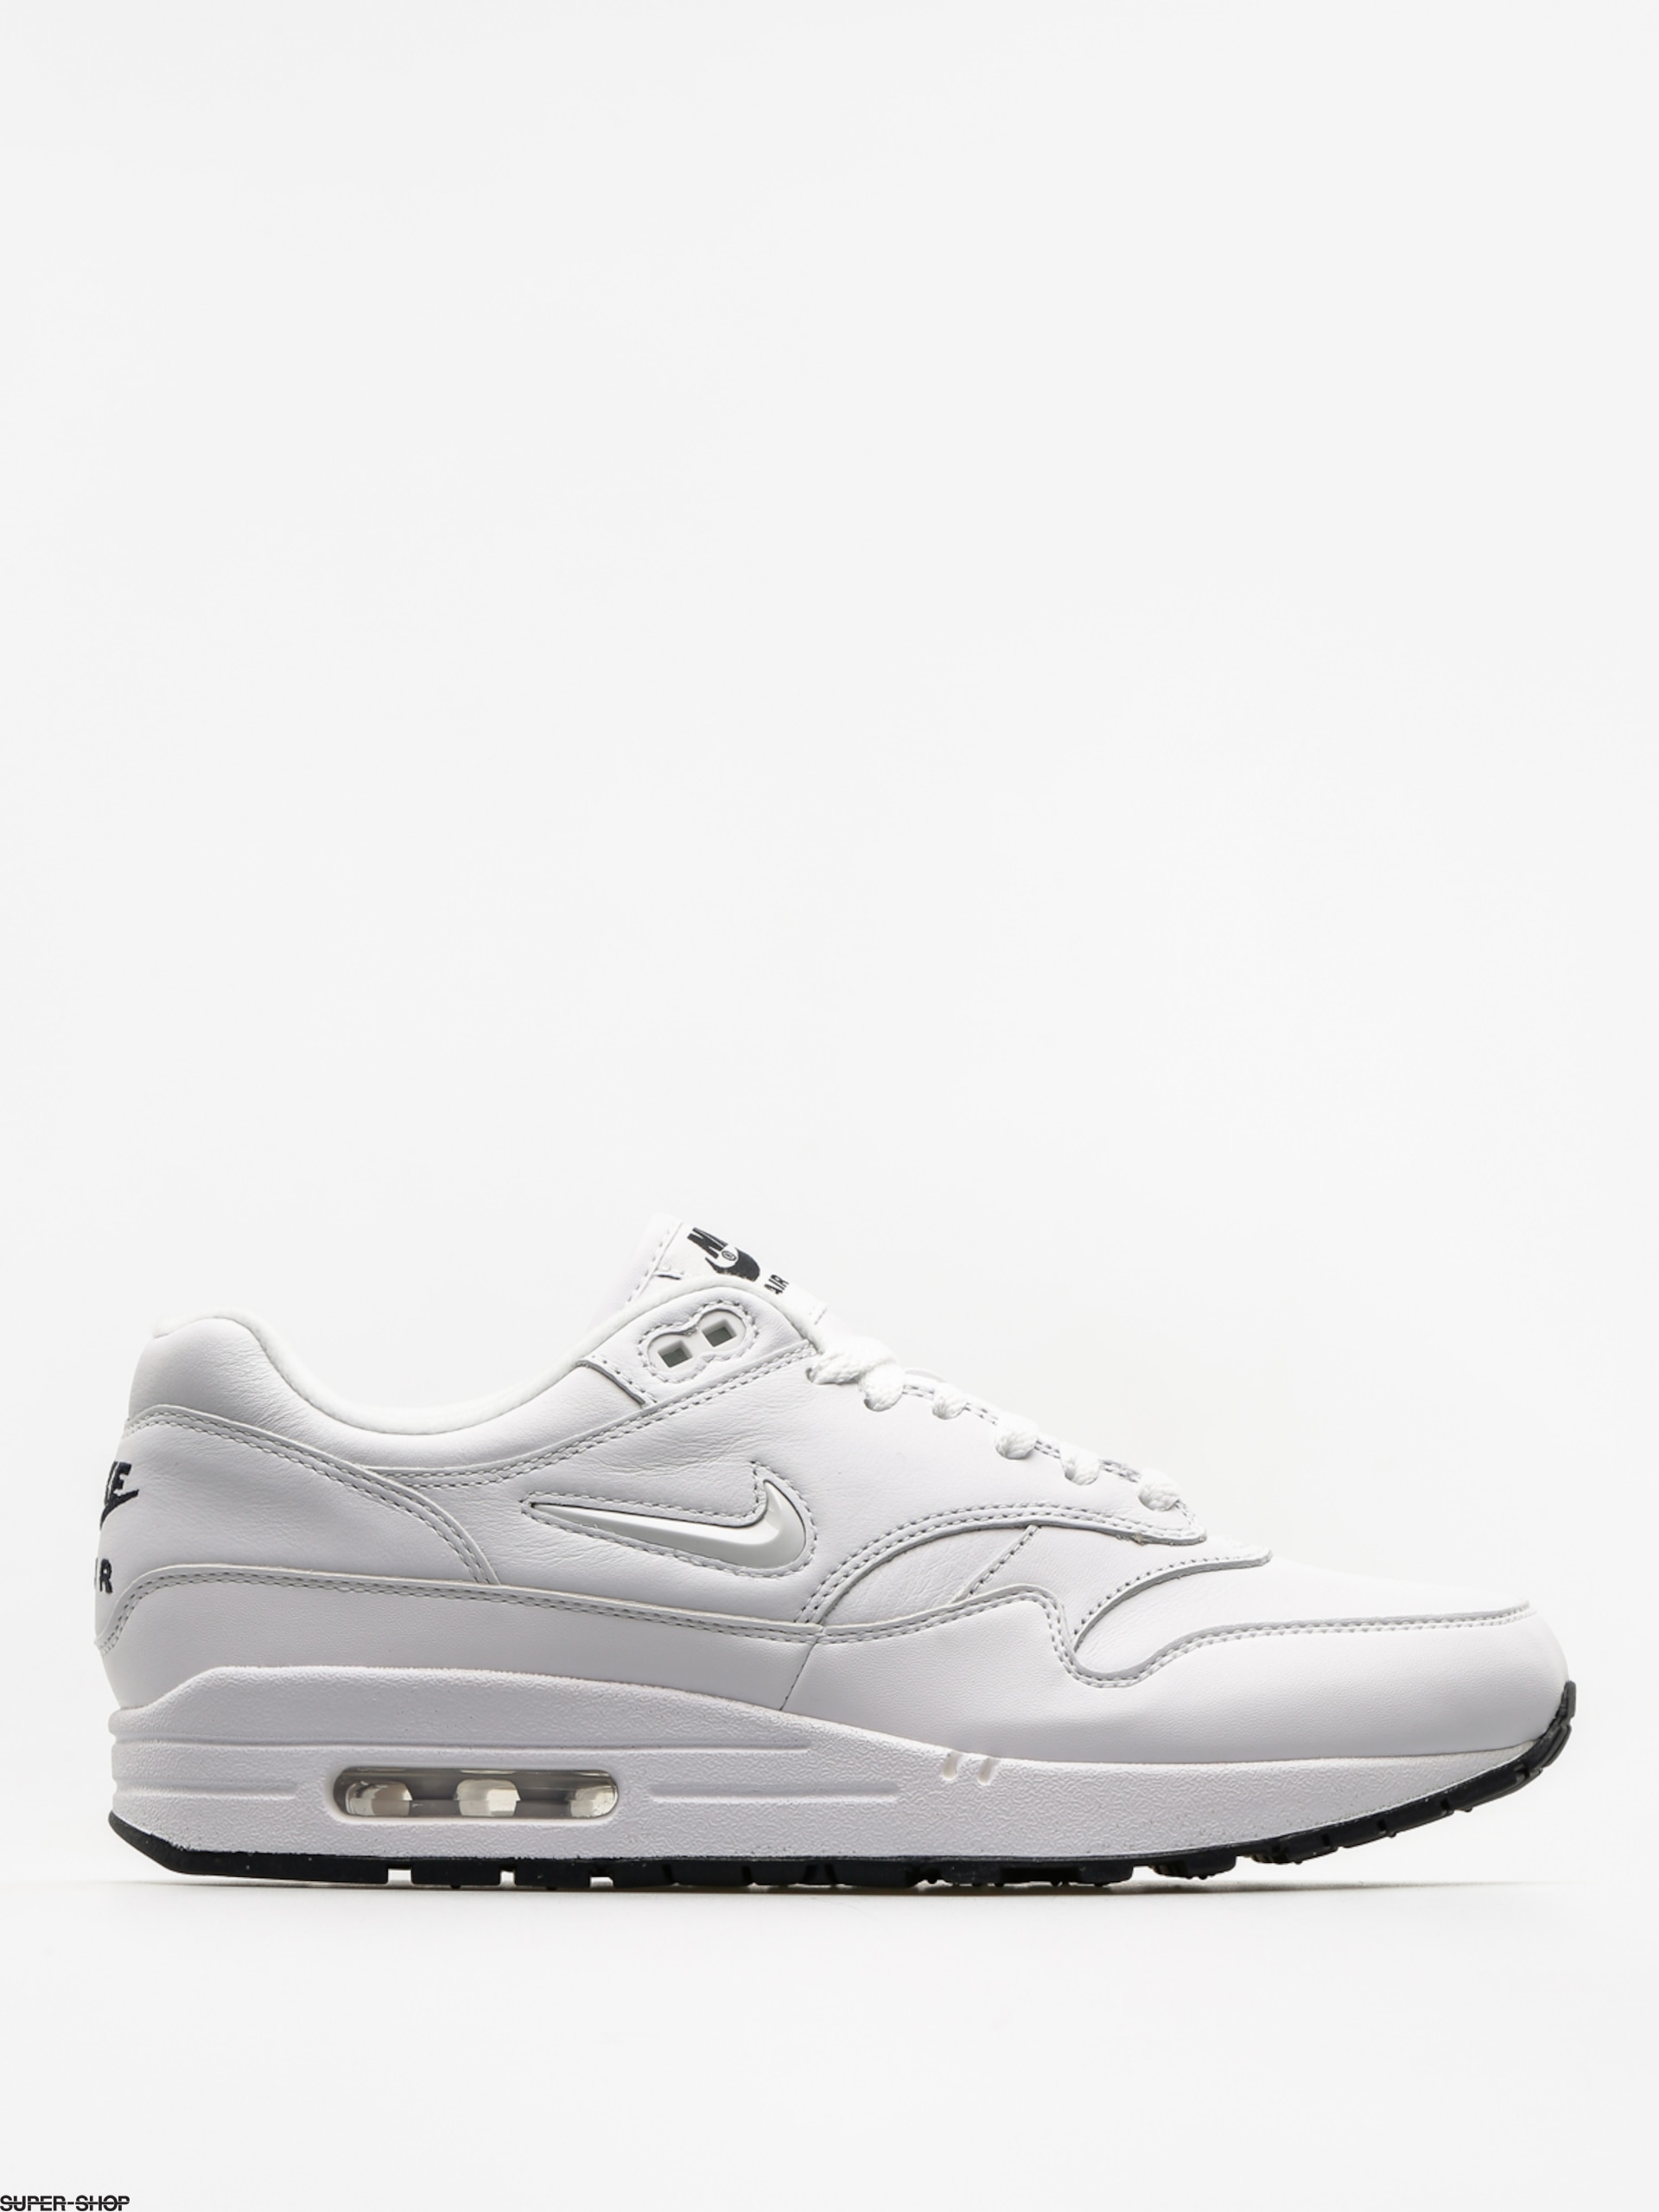 Nike Shoes Air Max 1 Premium Sc (white/white dark obsidian)